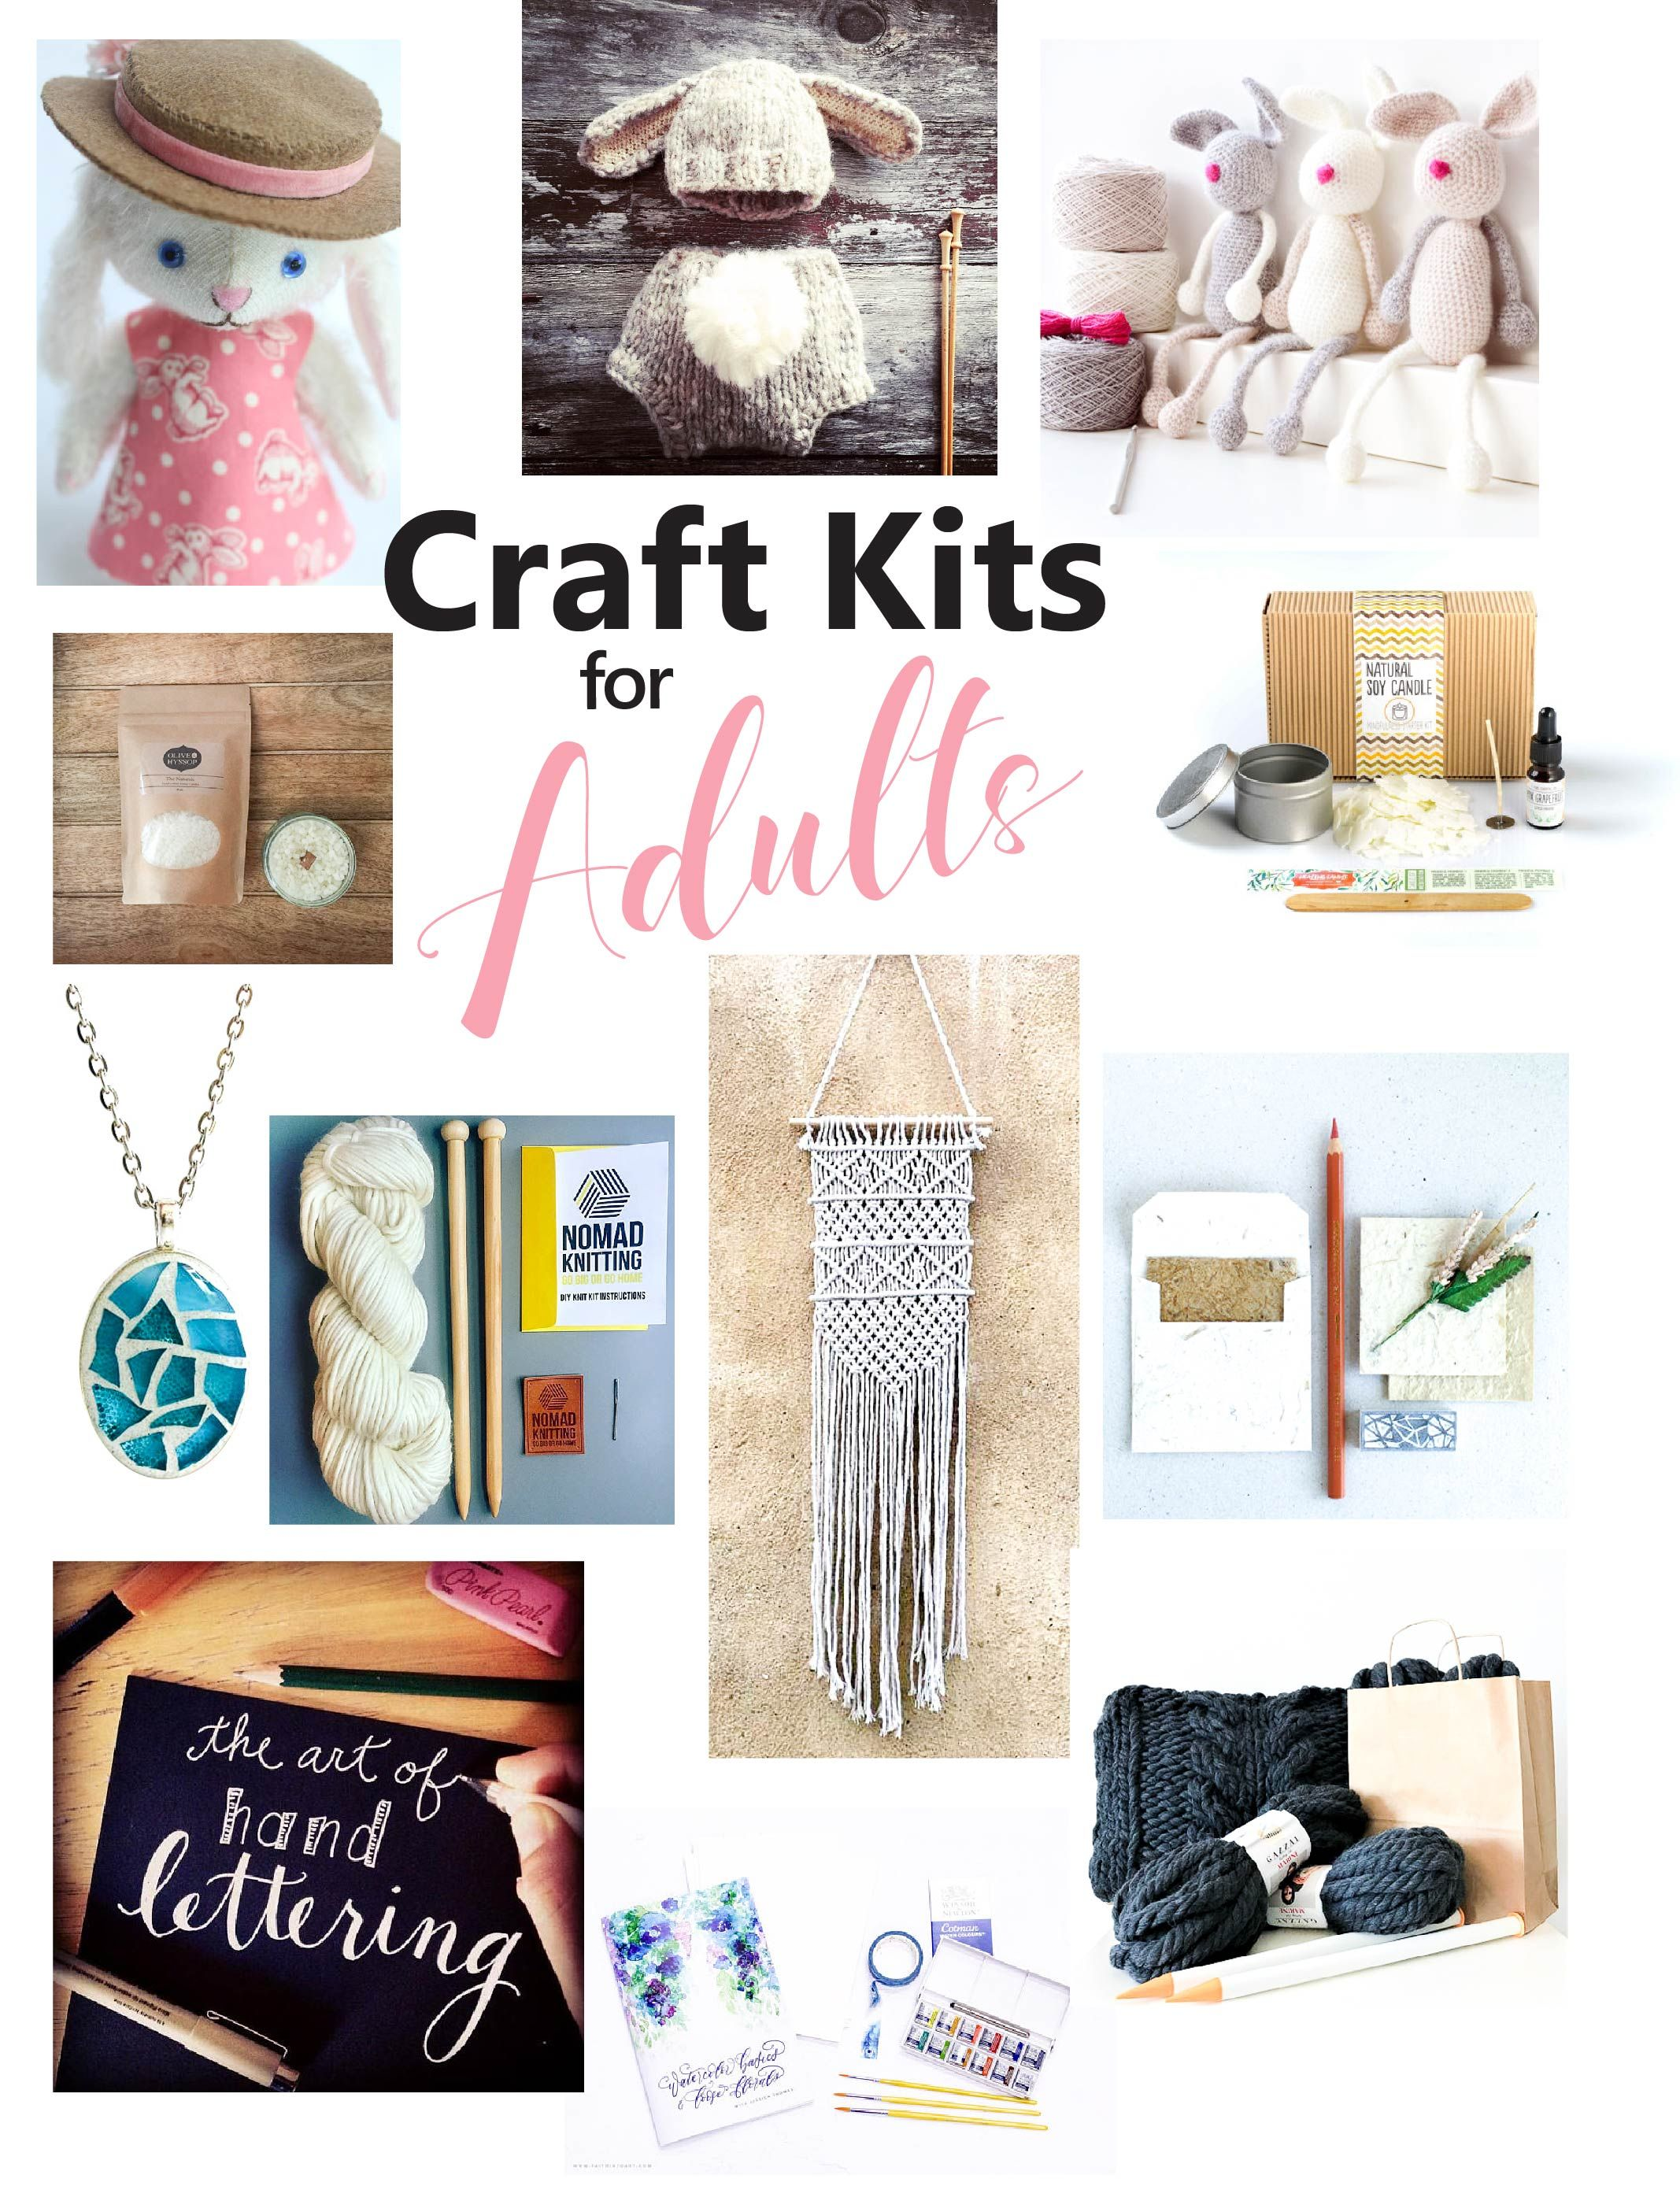 Pin On Crafts Projects And Things To Make